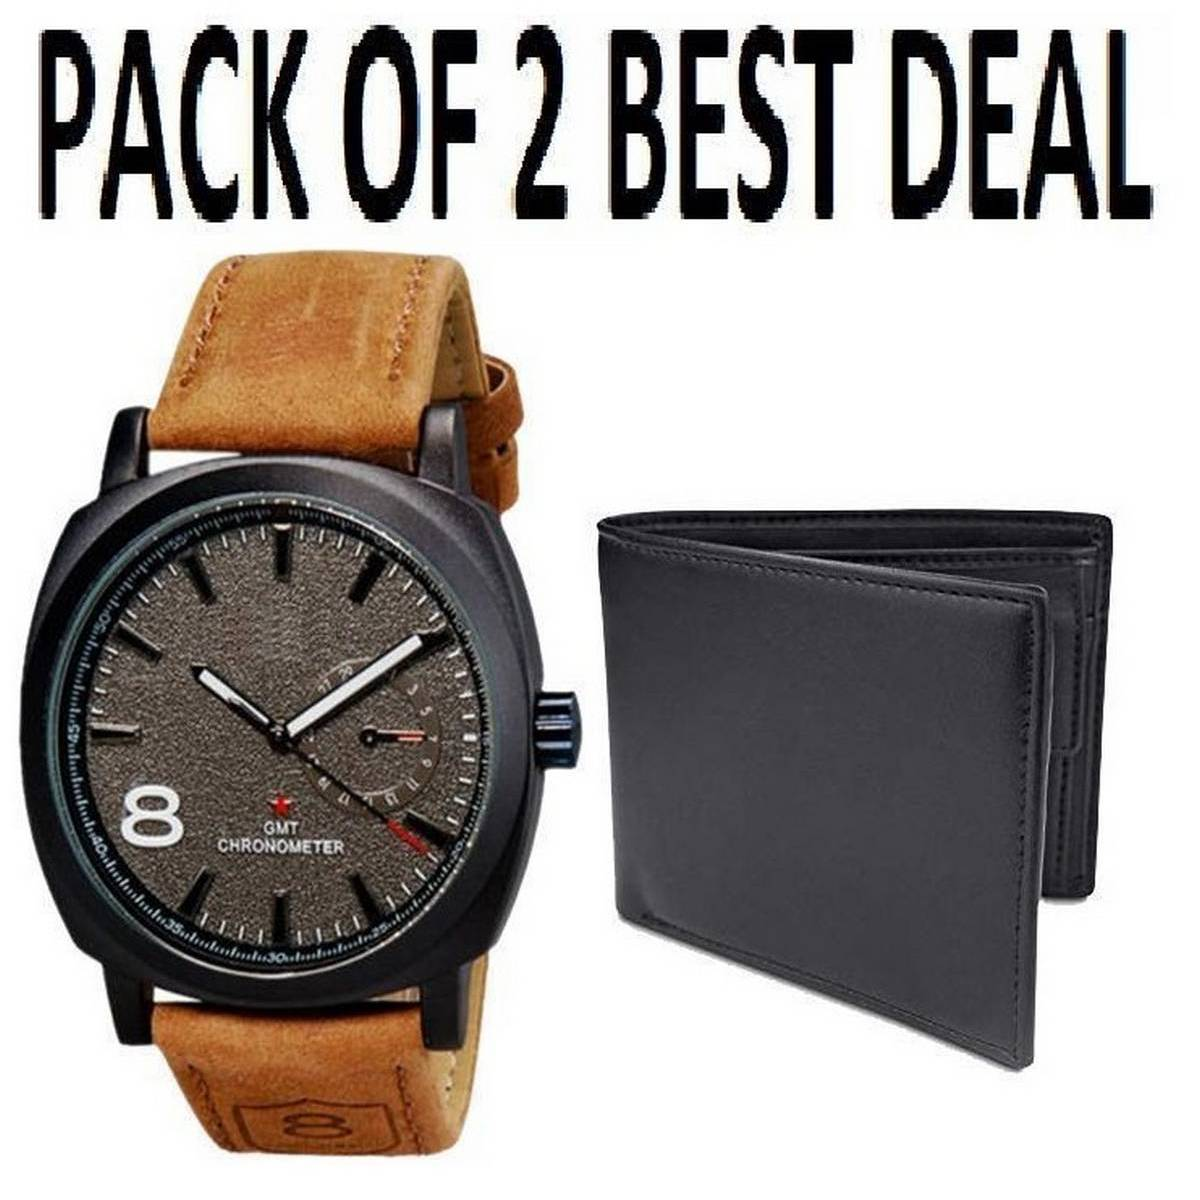 Pack of 2 - Wallet & Watch For Men